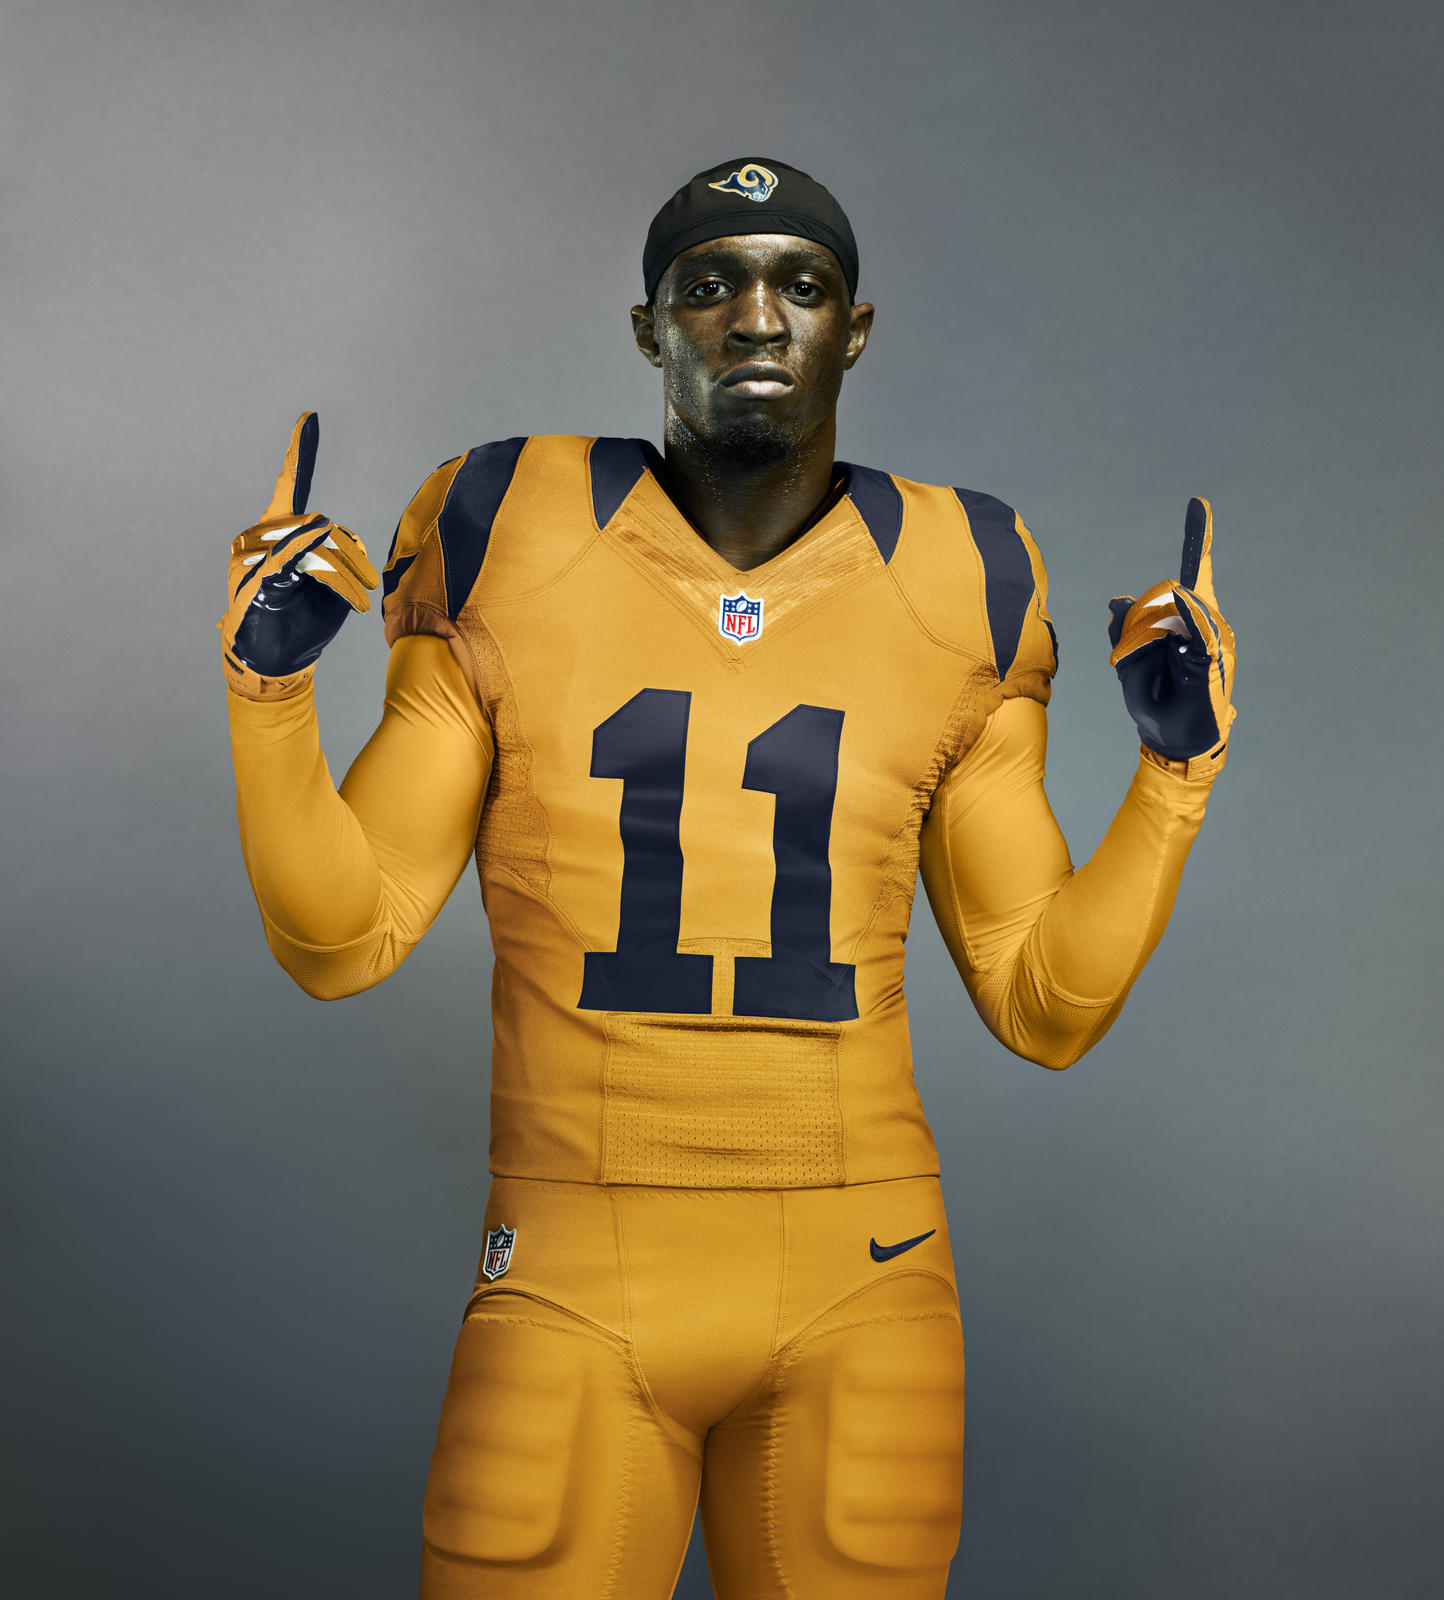 Steelers New Uniforms